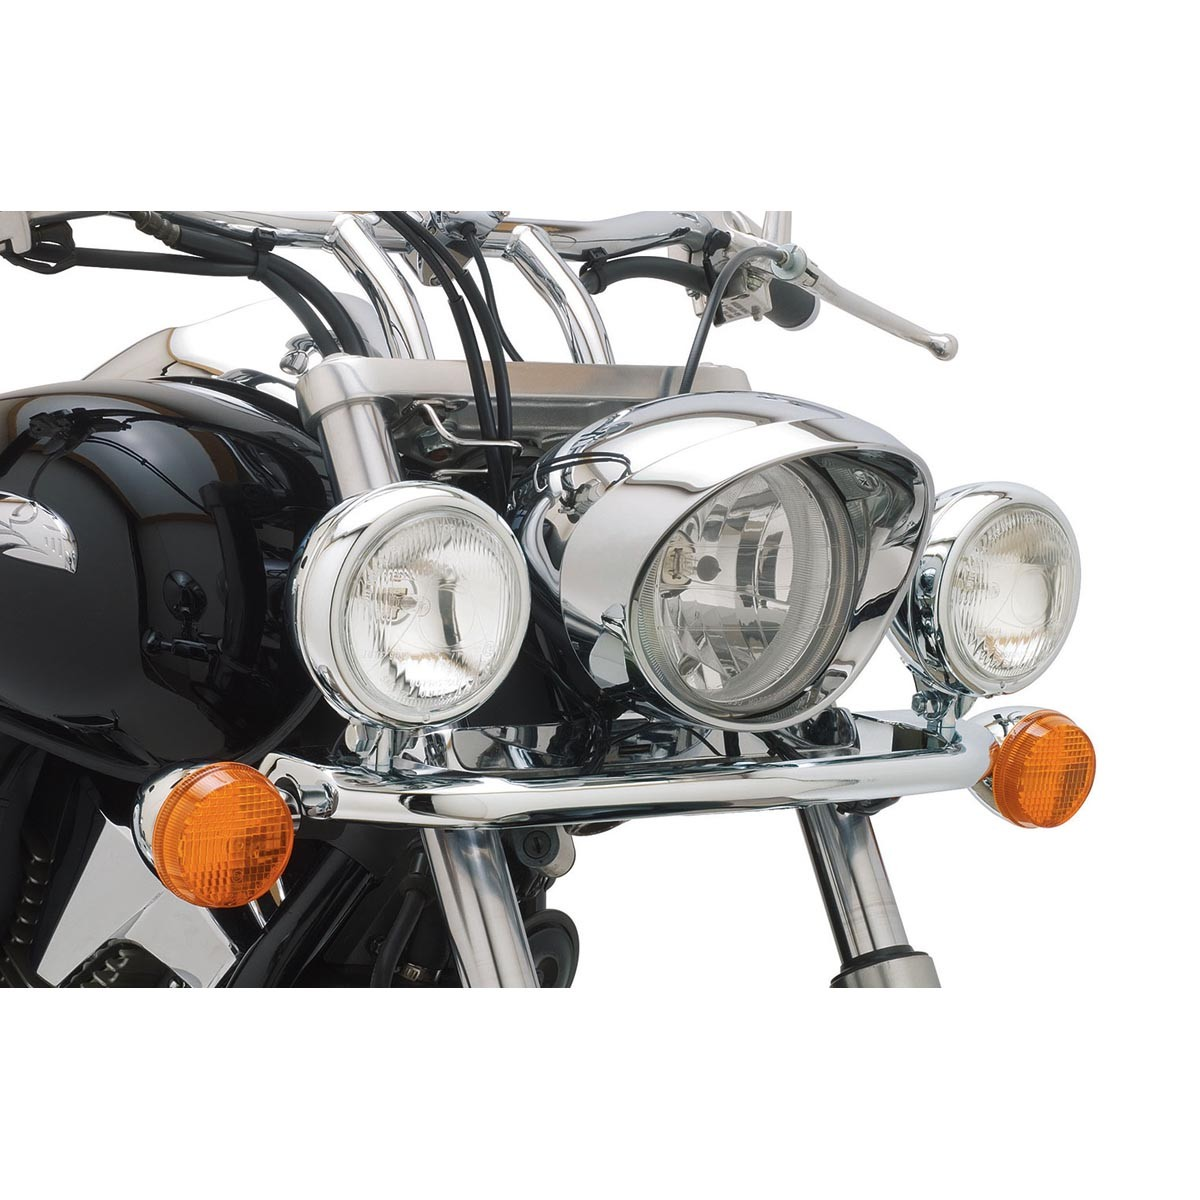 Get it delivered to your door - COBRA Steel Lightbar/Spotlights w/Turn Signals - 04-0152 - 6800 (EGP)